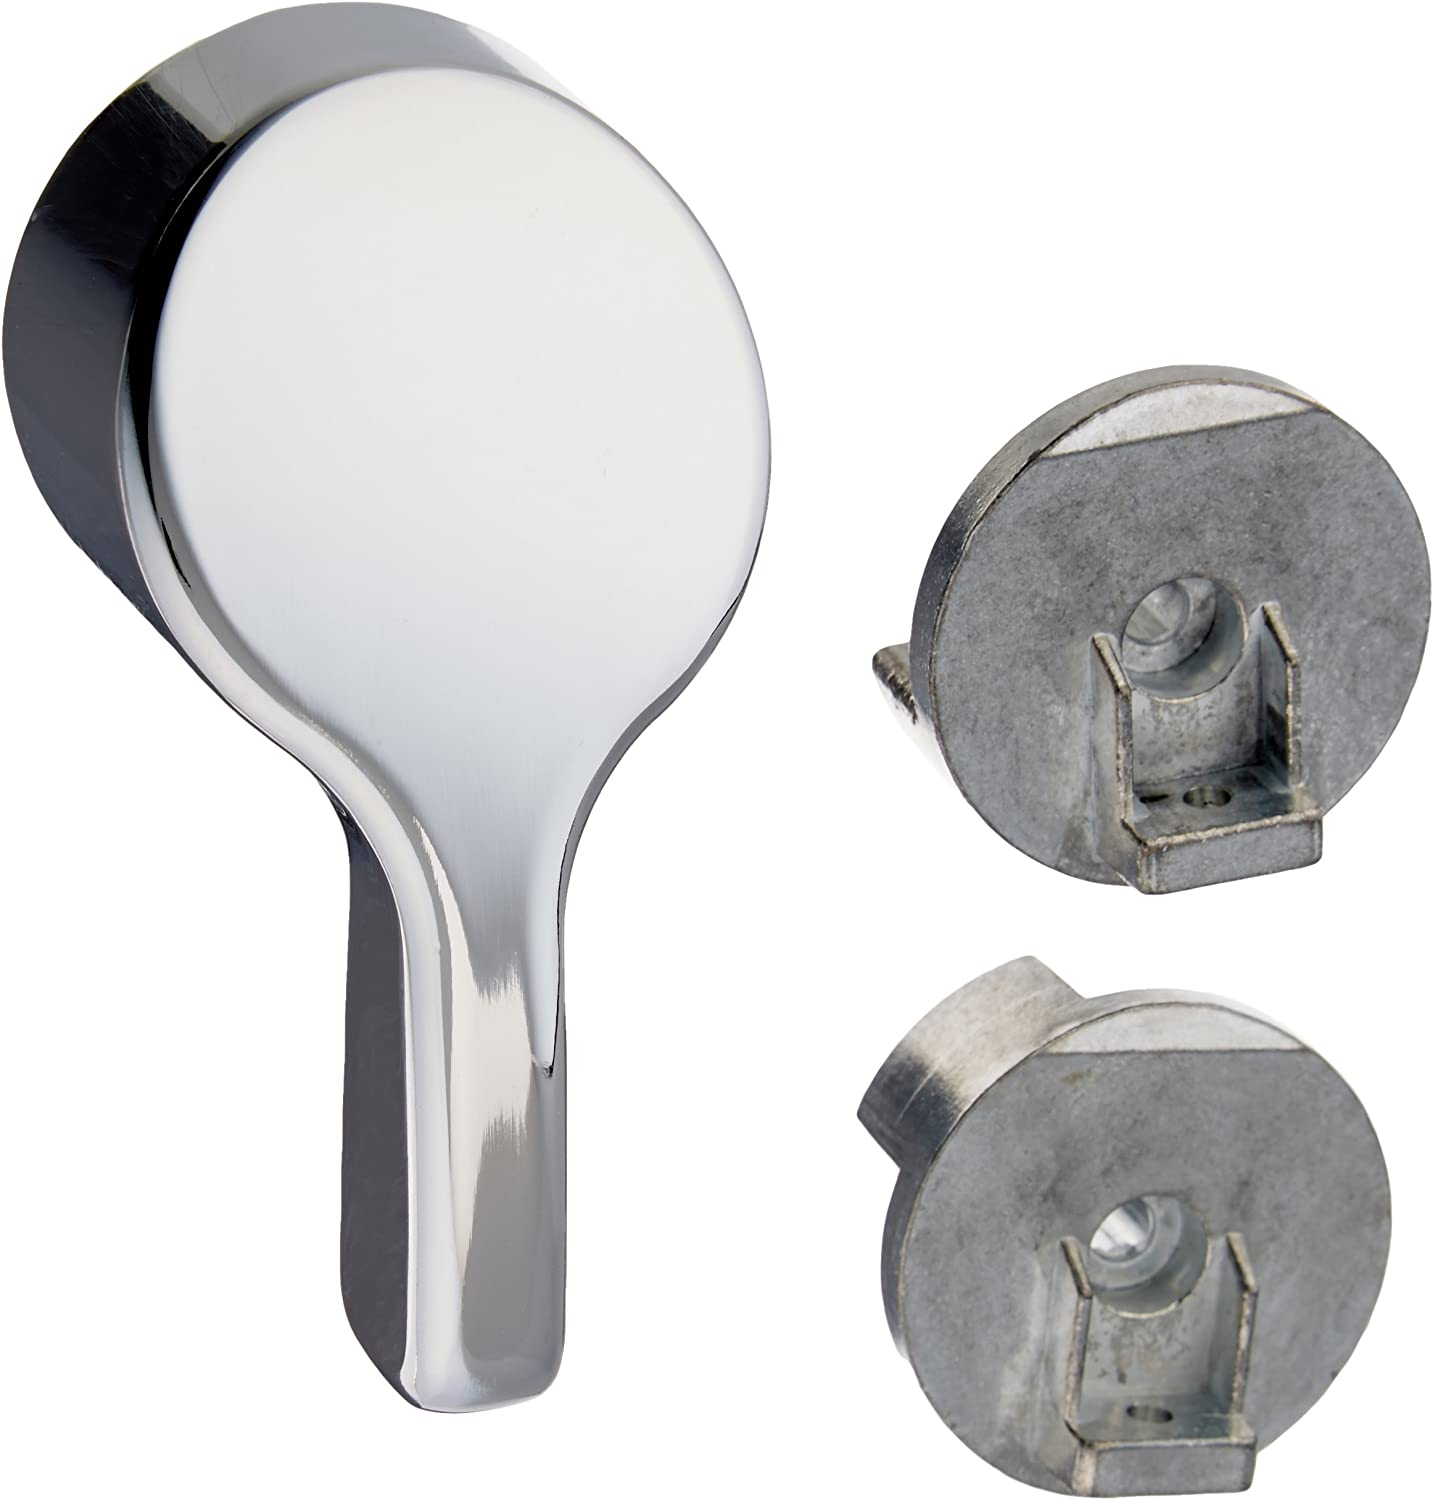 For Use With Bathroom Sink 3-1//4 in L X 2 in H Kitchen Sink and Tub Shower Faucets Danco 10423 Lever Faucet Handle